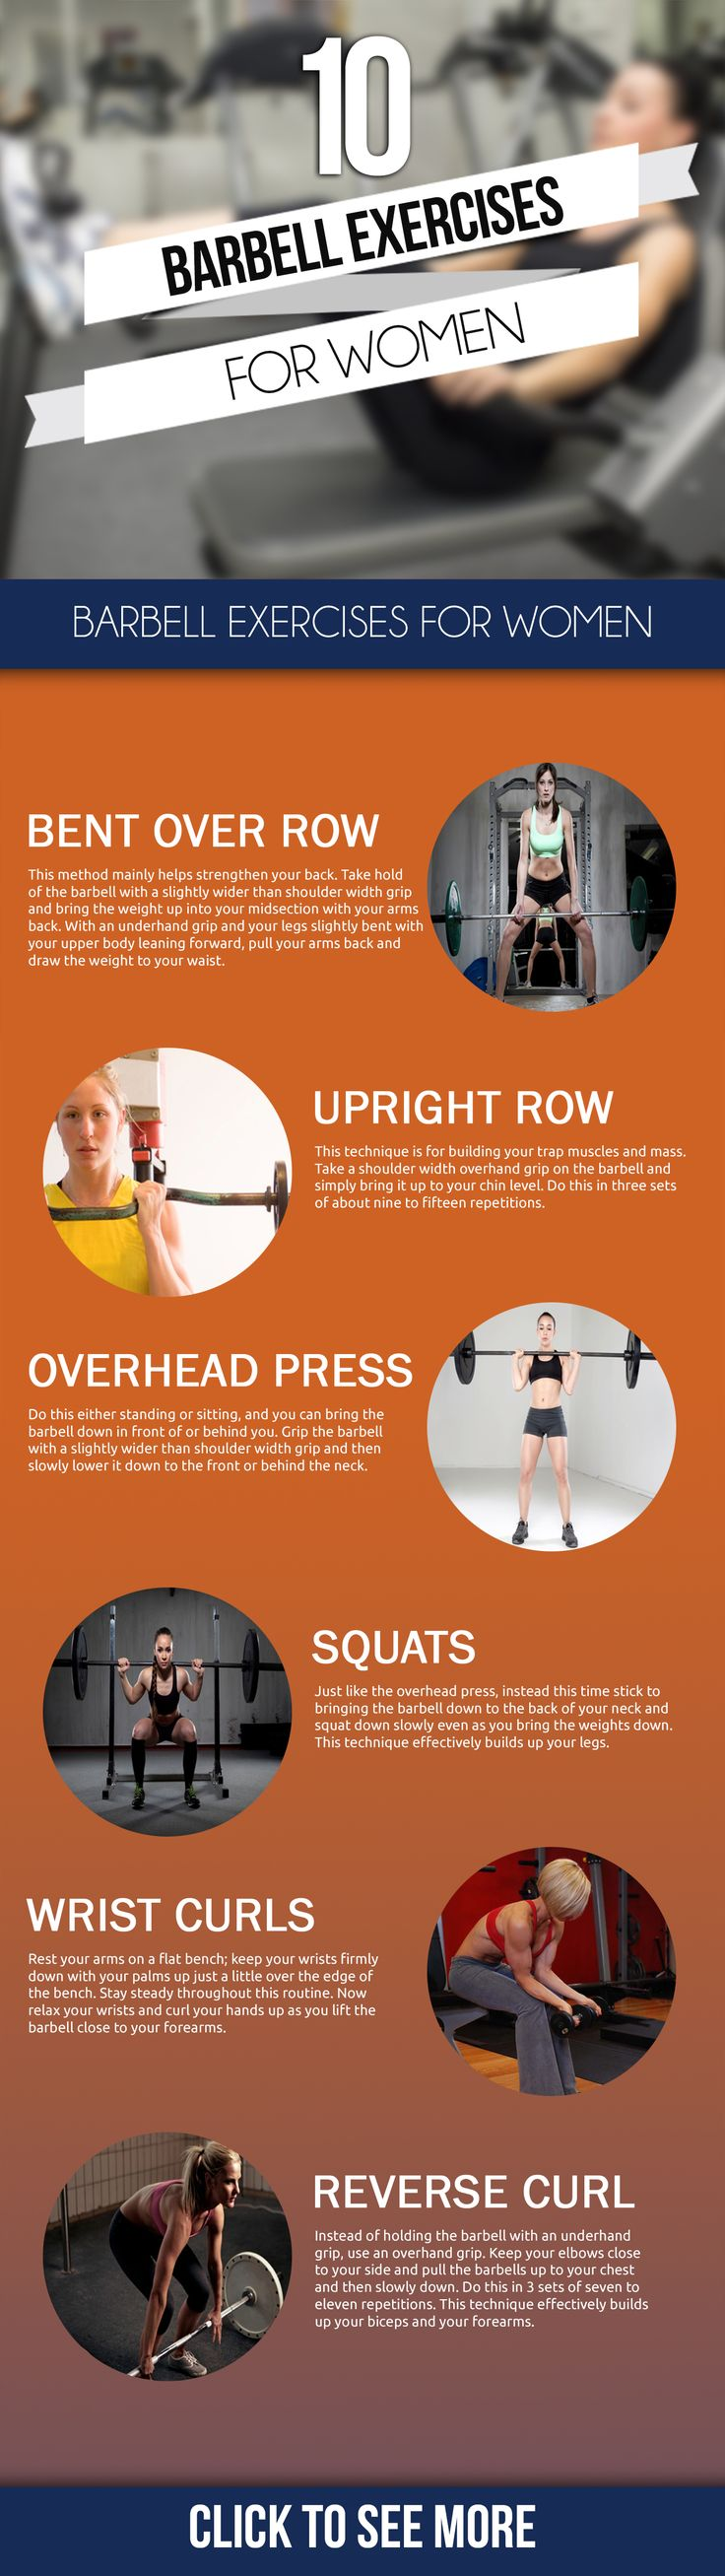 Are you looking to build strength and stamina? Then its time to take to barbell exercises for women! Here is a list of the 10 best!